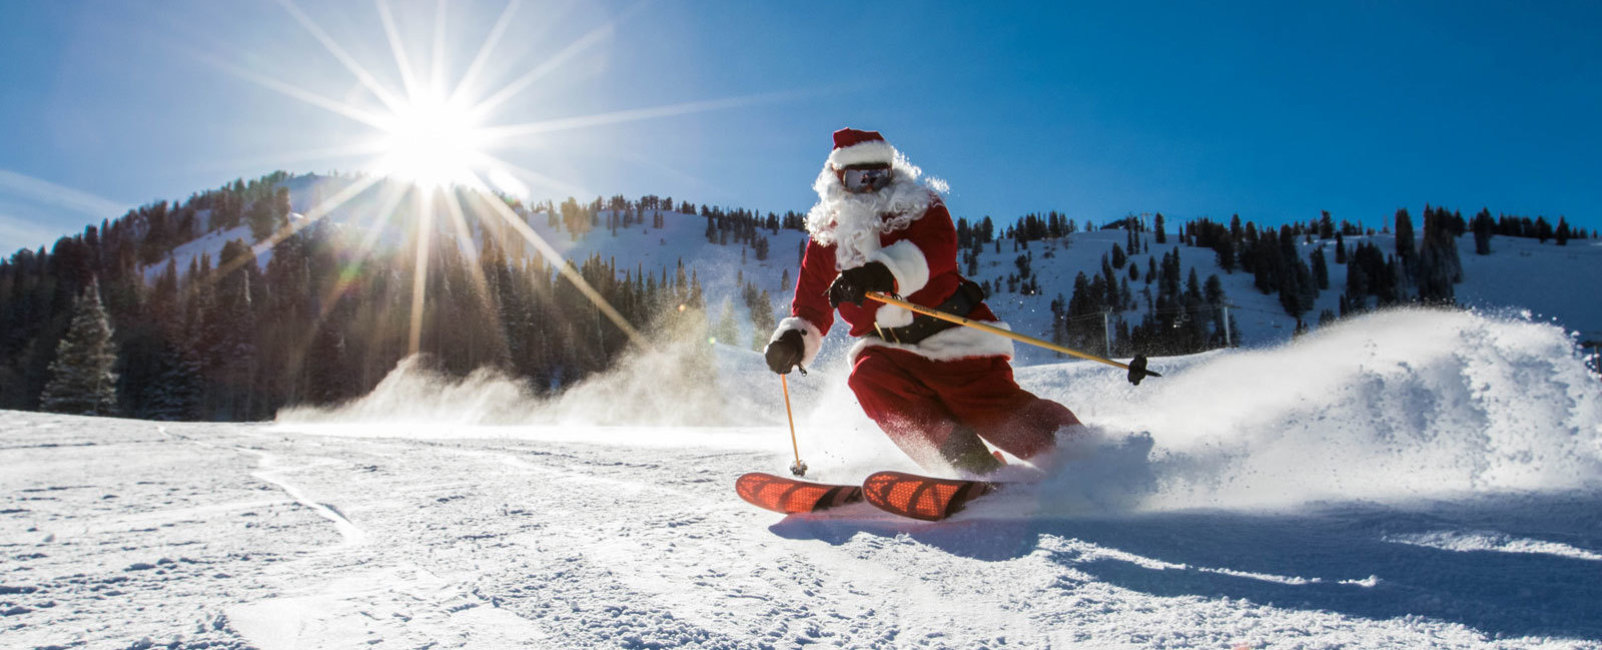 Tis the Season: Santa on the Slopes